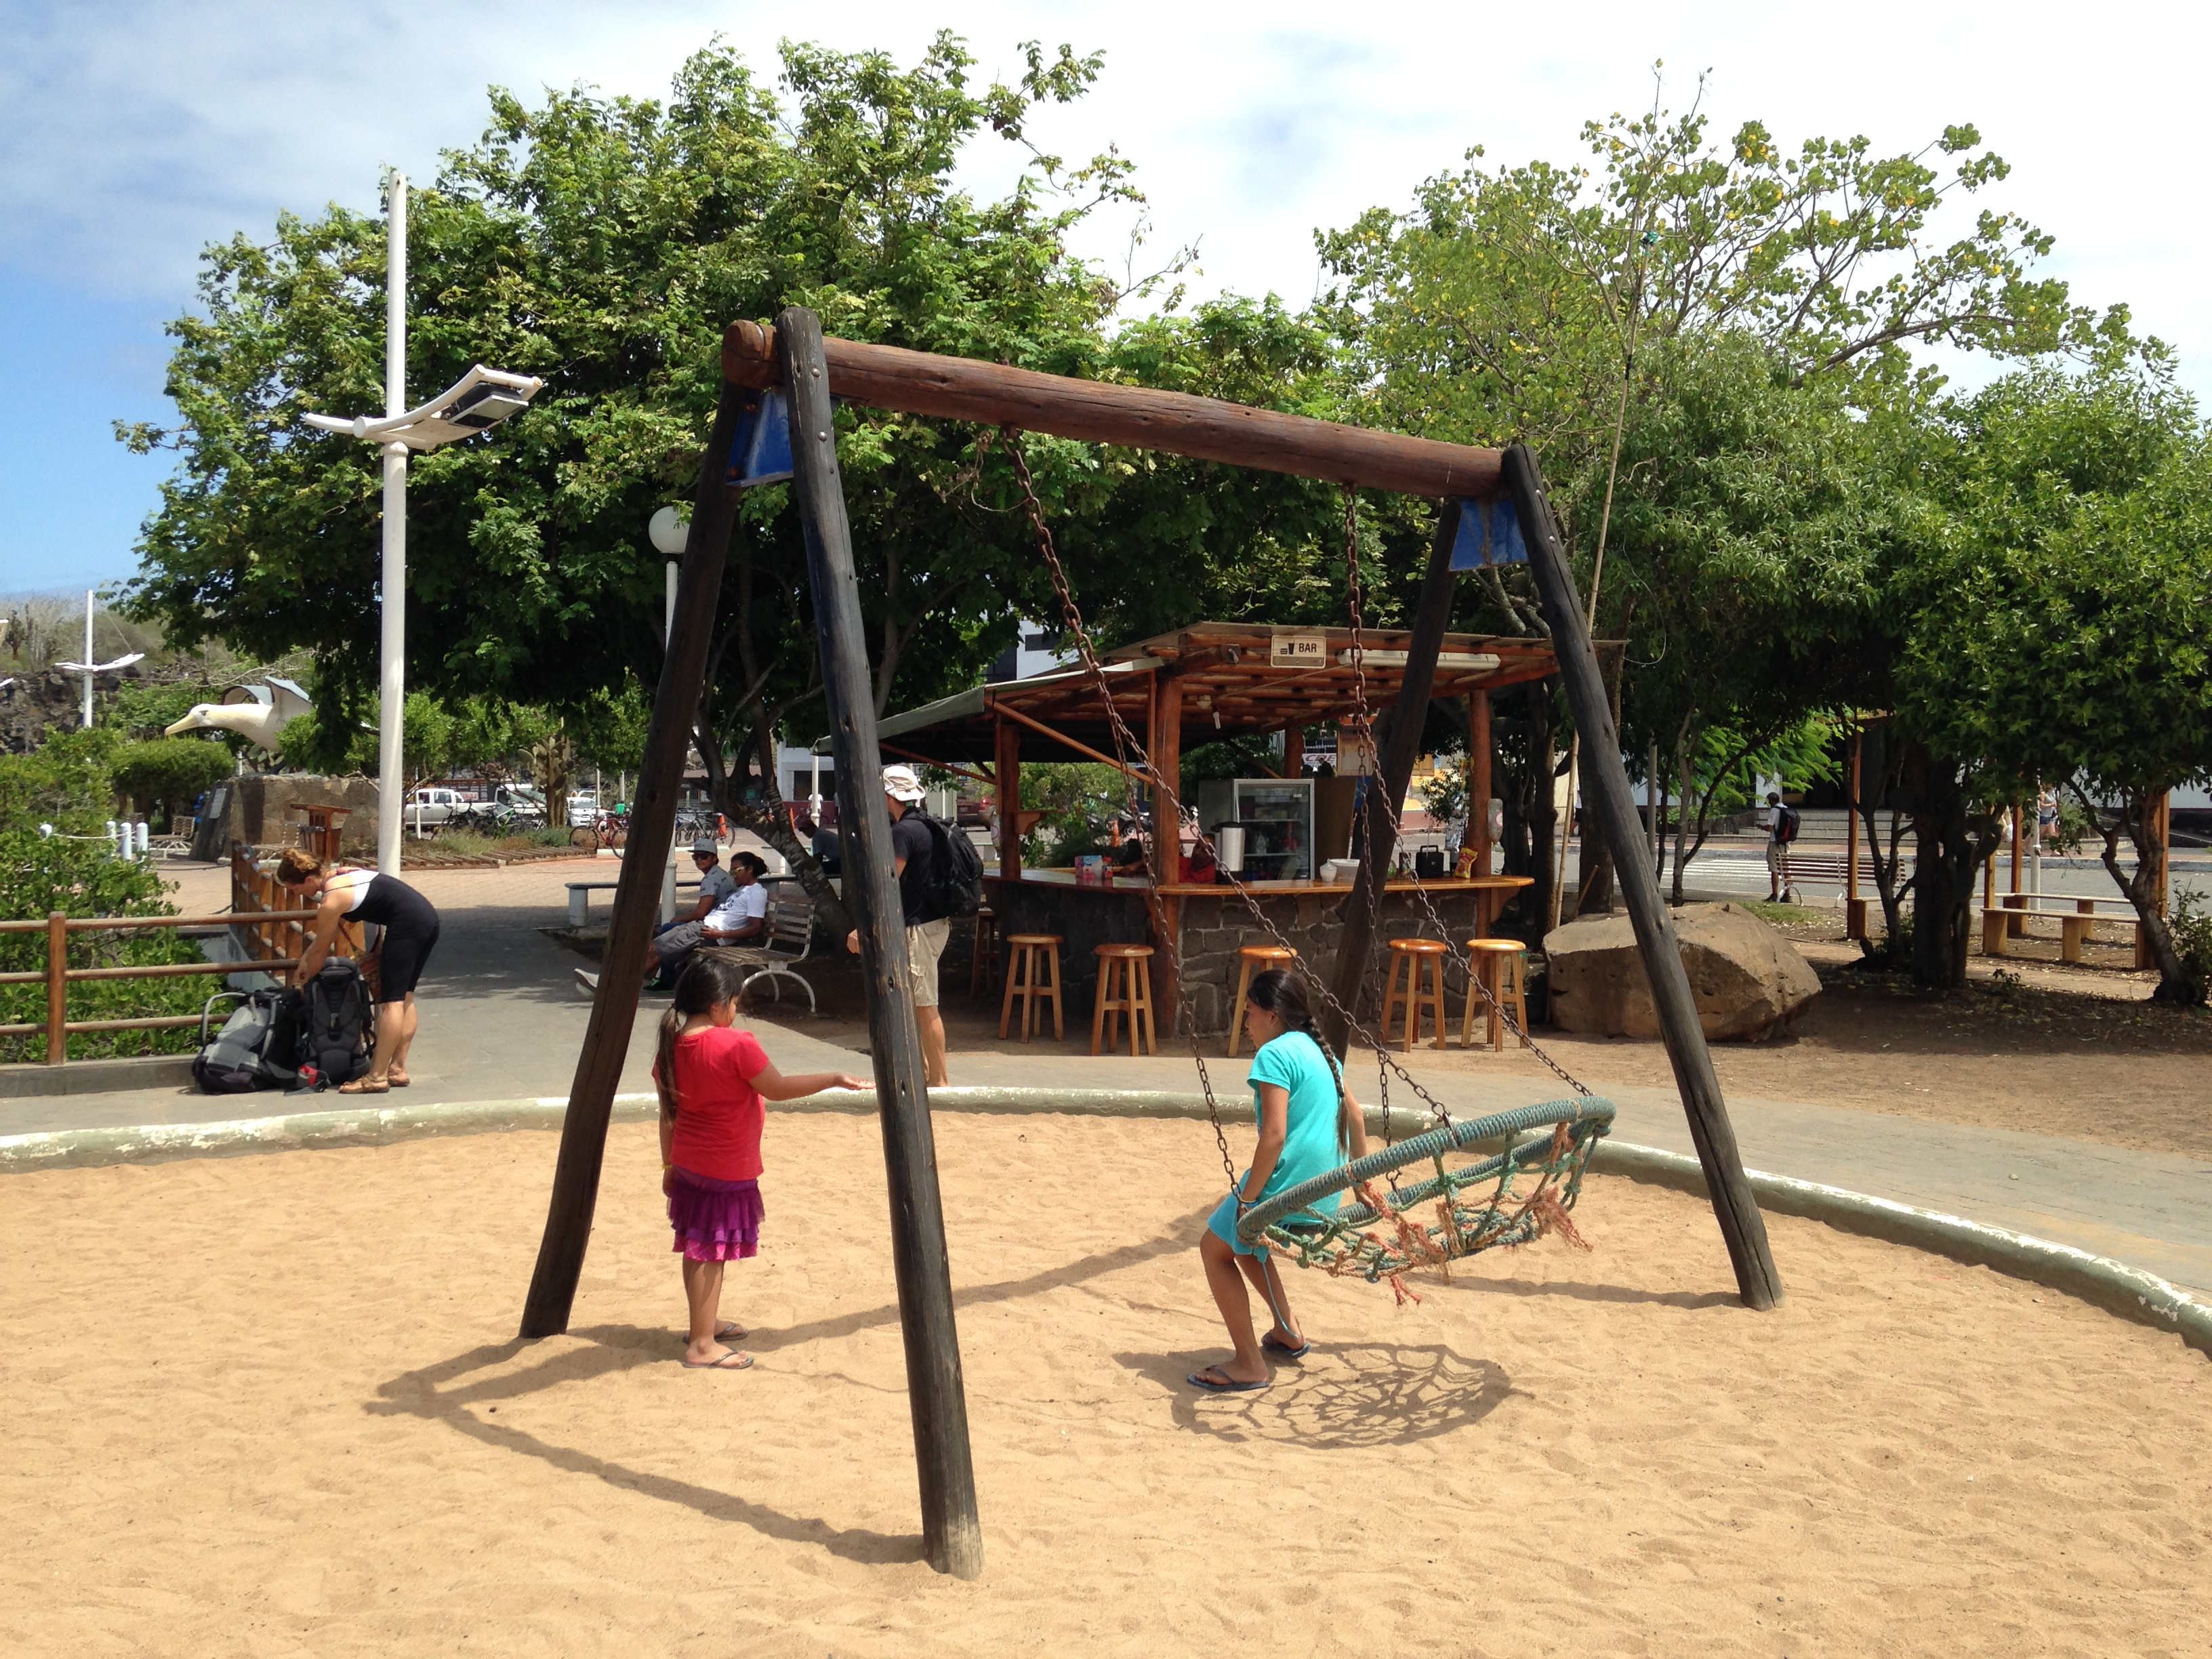 Outdoor Playground Equipment Made of Wood